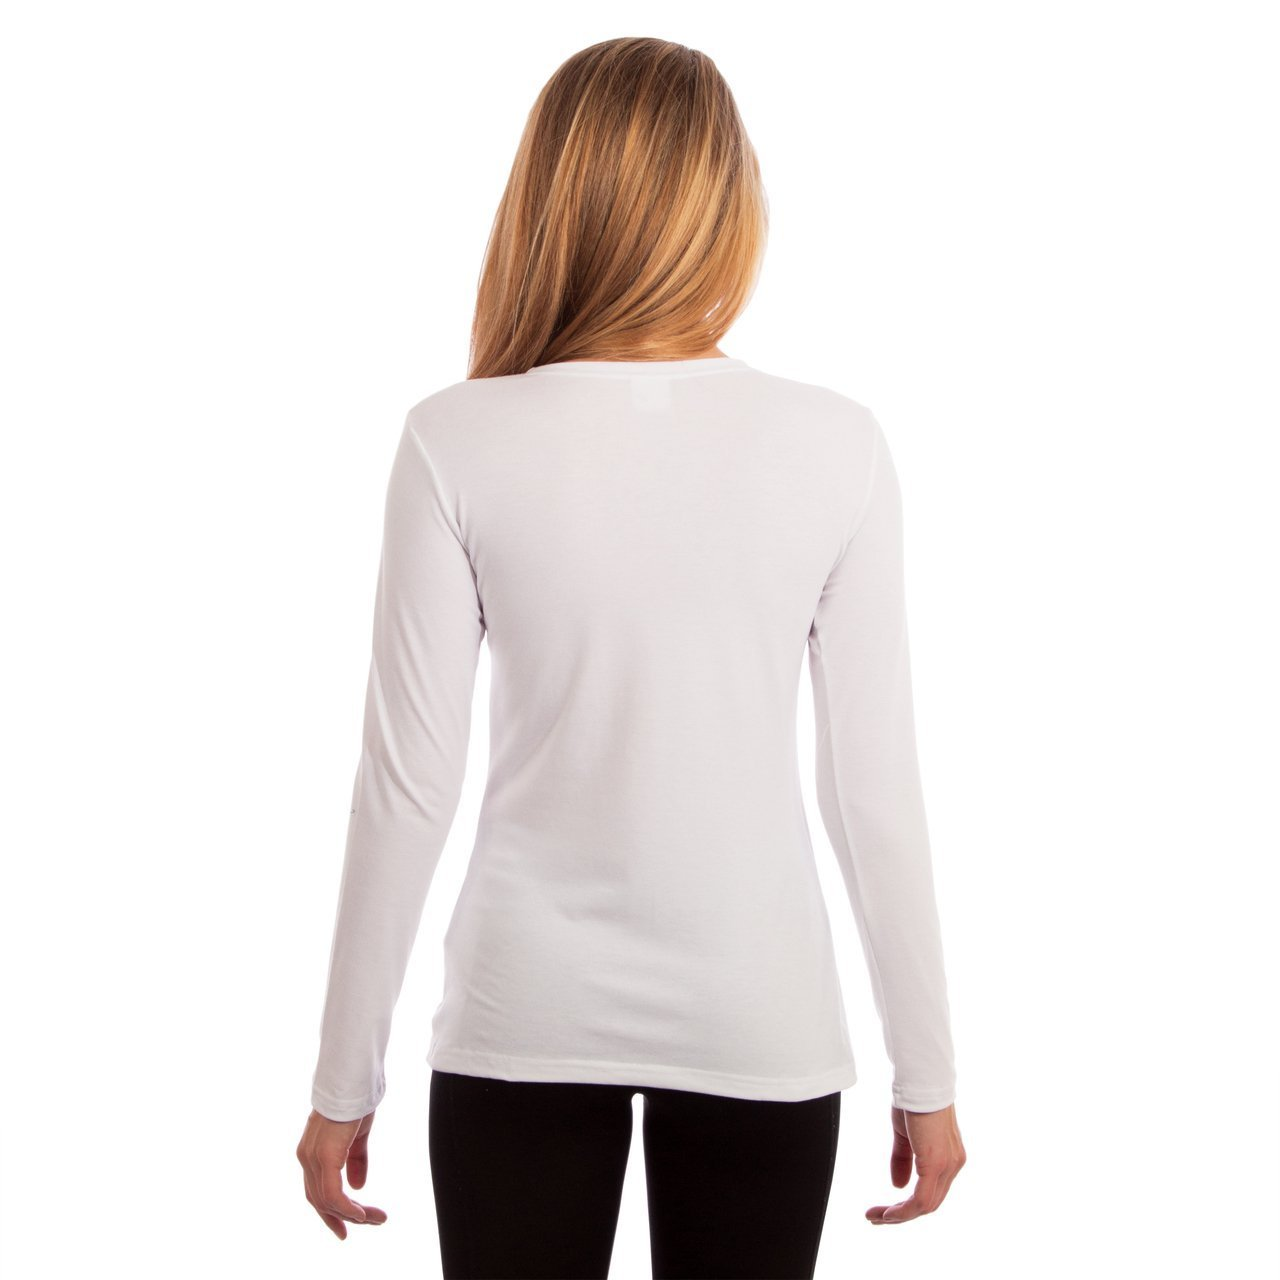 L700WH Slim Fit Long Sleeve - White